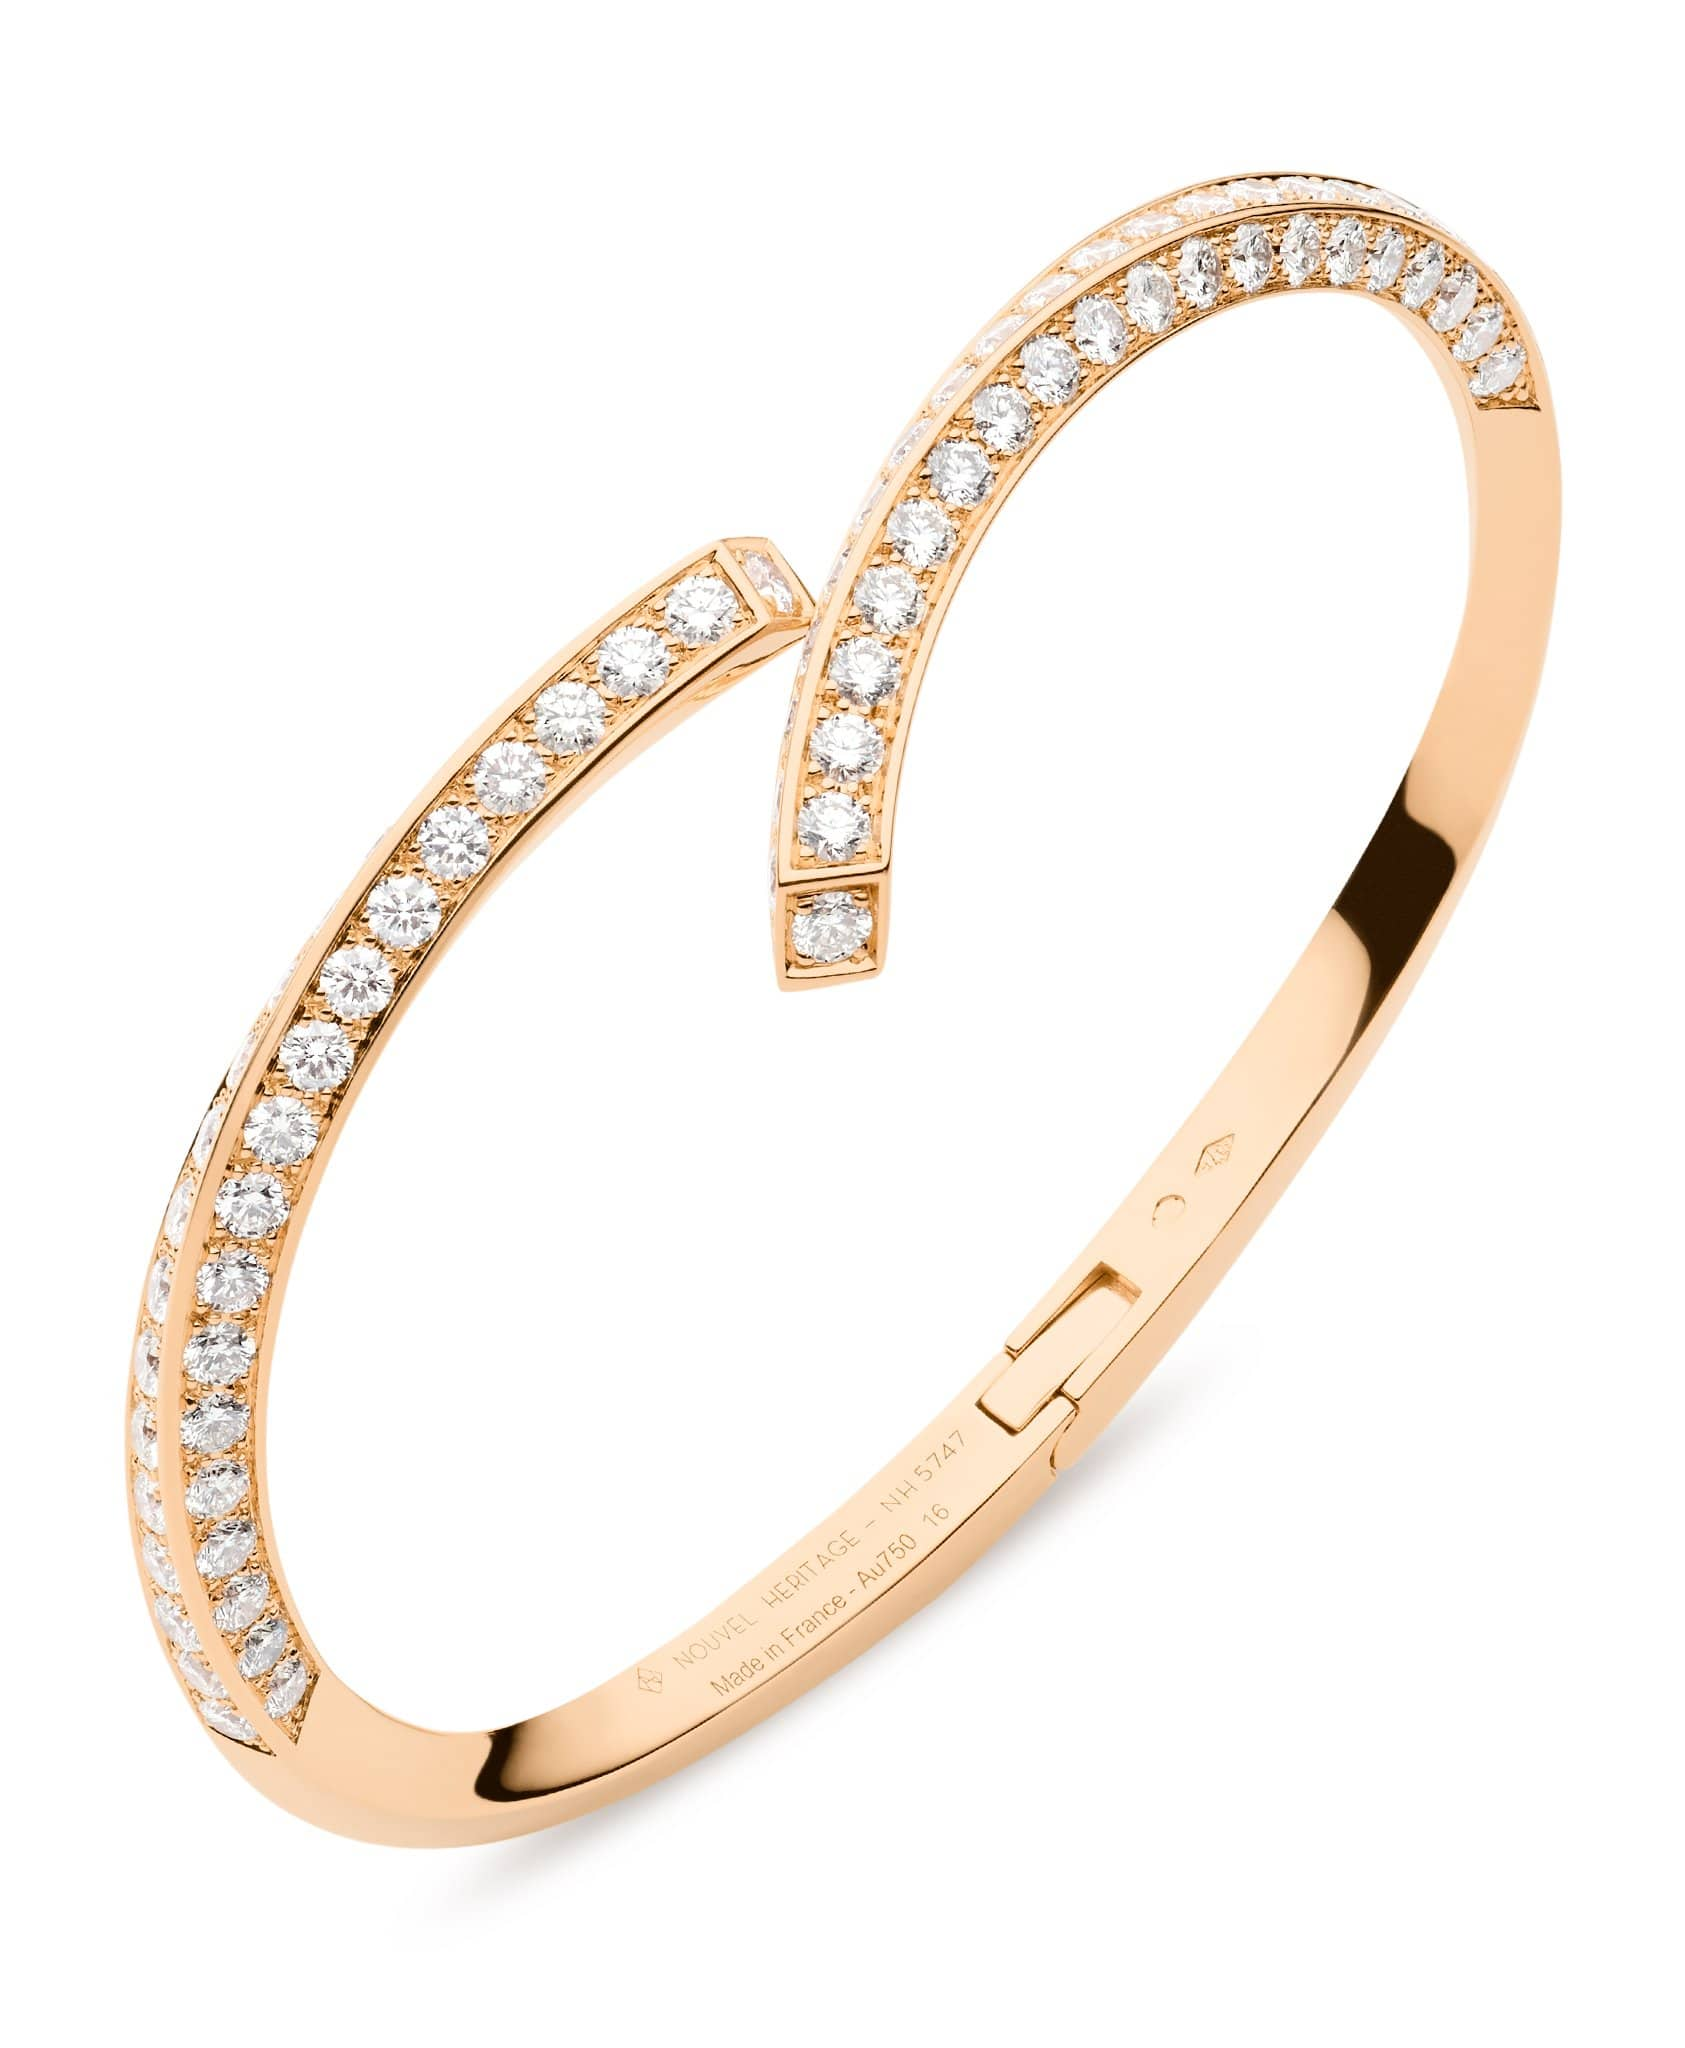 Diamond Thread Bangle: Discover Luxury Fine Jewelry | Nouvel Heritage || Rose Gold